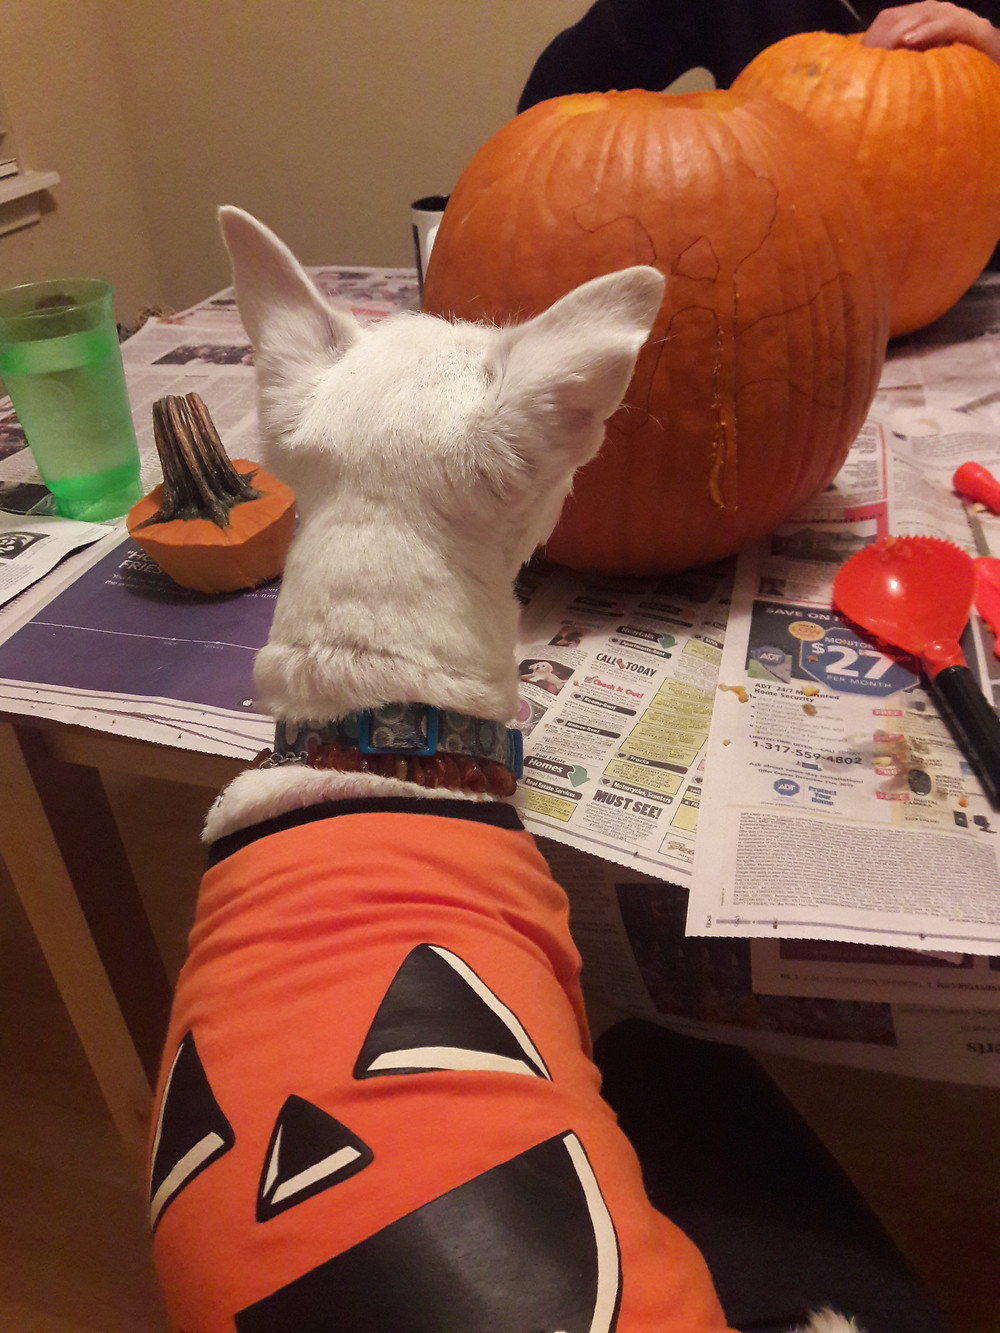 White Dog Editorial pumpkin carving